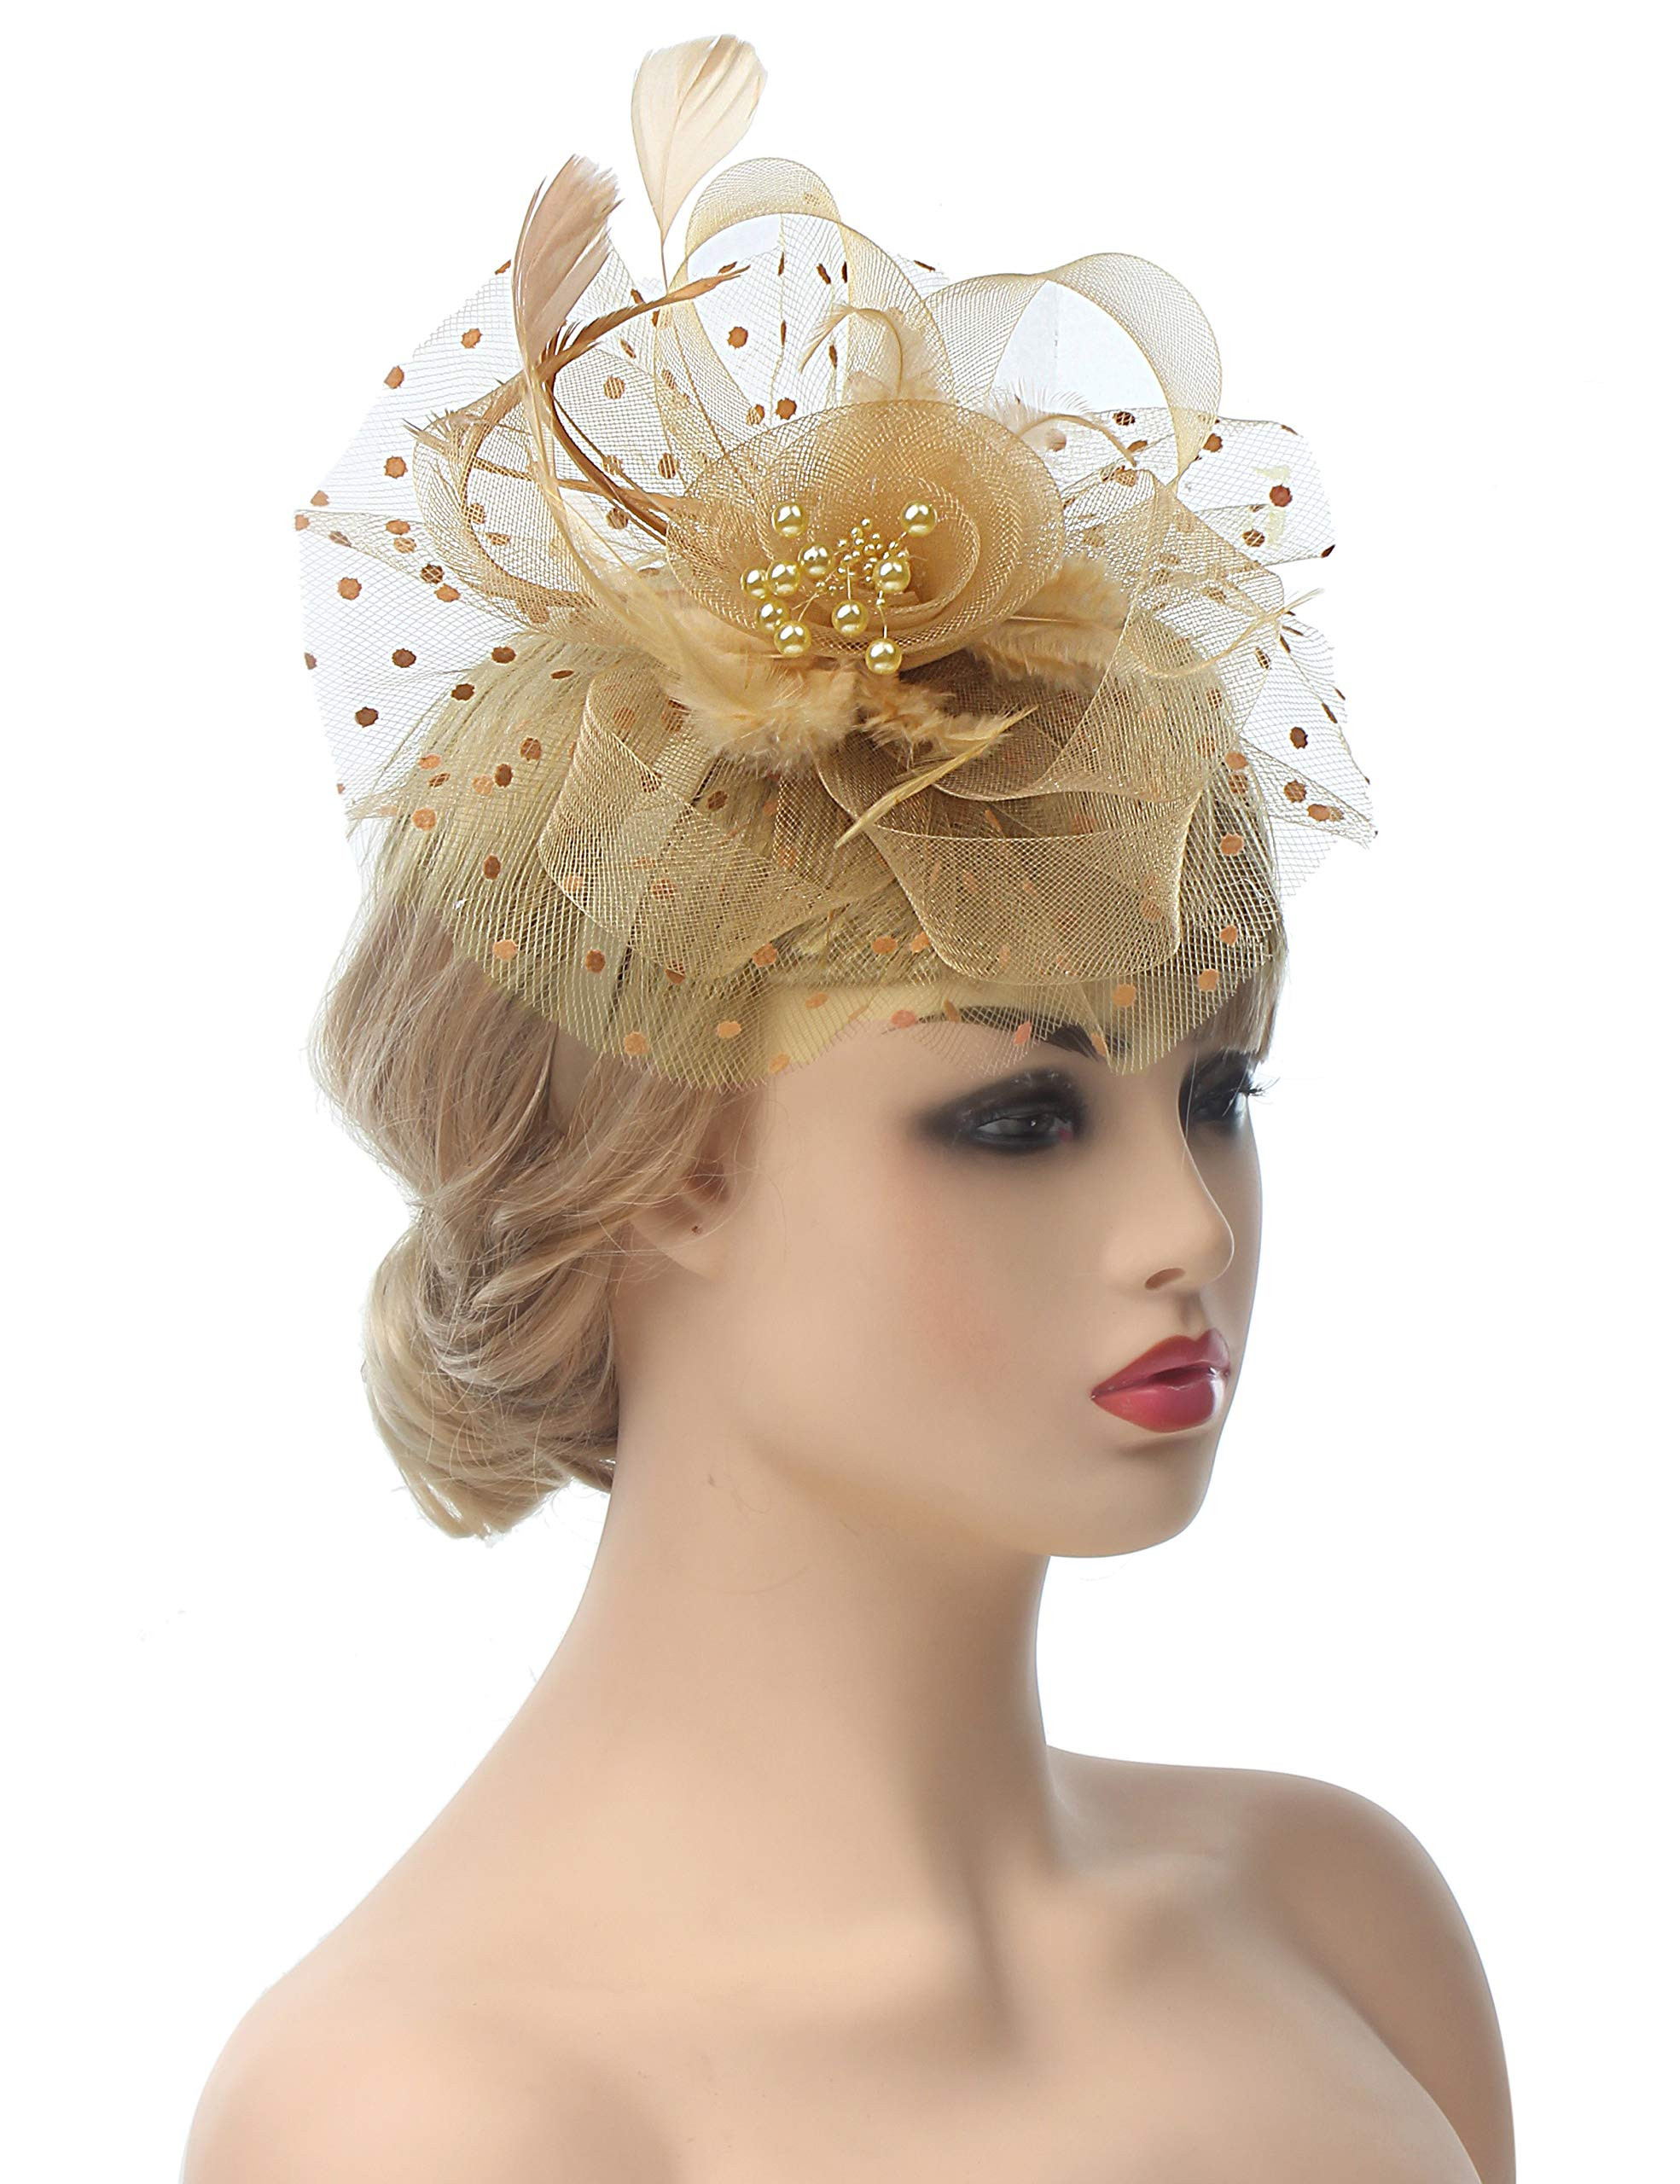 Myjoyday Fascinators Hat for Women Tea Party Headband Kentucky Derby Wedding Cocktail Flower Mesh Feathers Hair Clip (Khaki)